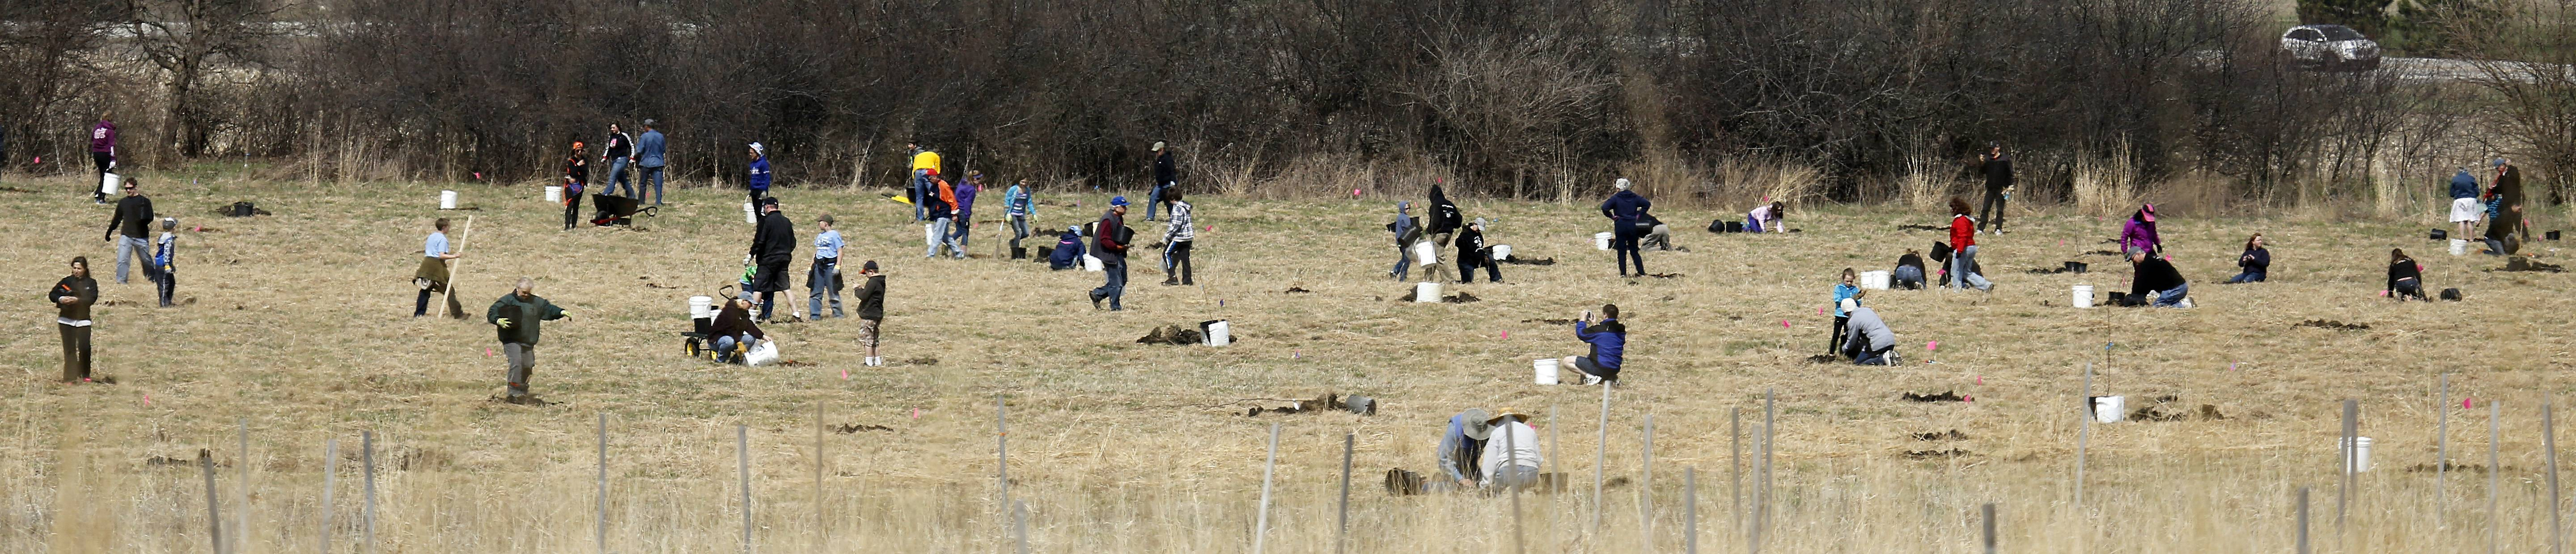 Hundreds of volunteers ventured into Fitchie Creek Forest Preserve in Elgin Saturday to plant some 400 trees in honor of Earth Day.